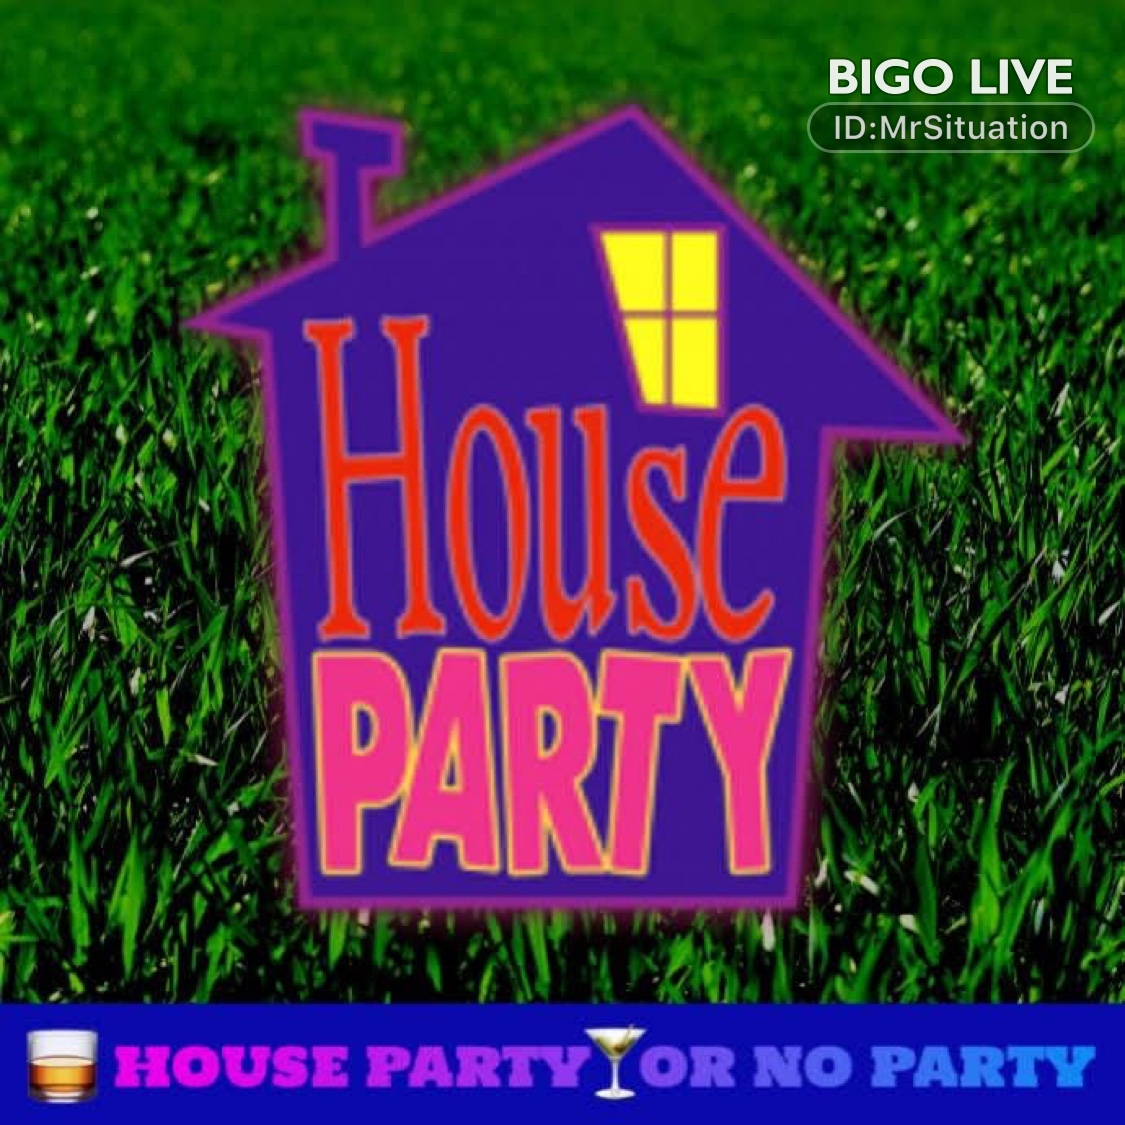 Come and see 🥃ᗪᗩᗪᗪY𝕋𝔼ℤ♍️'s LIVE in #BIGOLIVE: #chat 50% Rebate Pk Now   https://t.co/xRcJh0Bi4Y https://t.co/3MtqPqvw3x